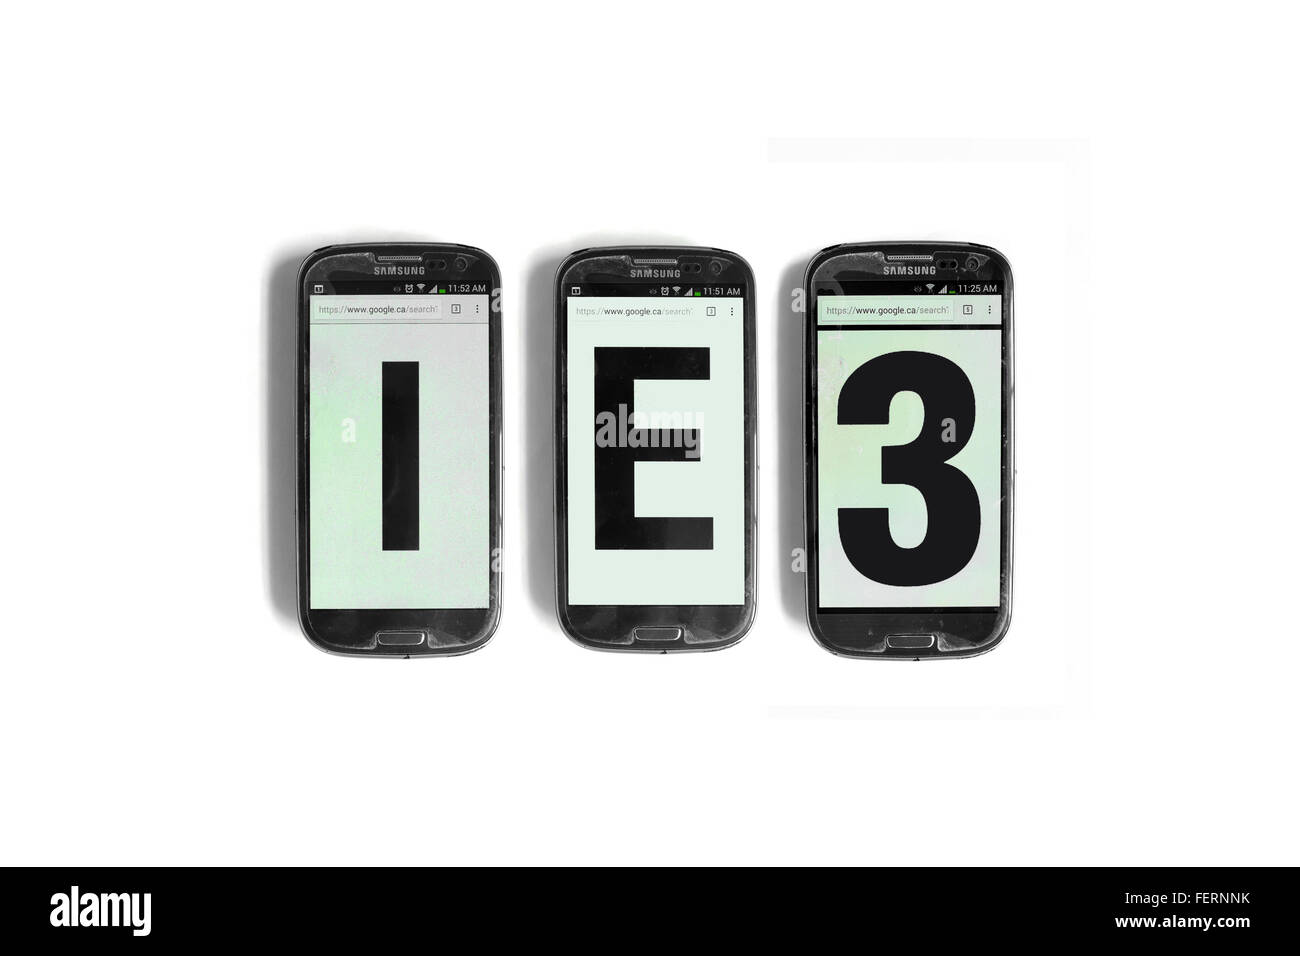 IE3 on the screens of smartphones photographed against a  white background. - Stock Image